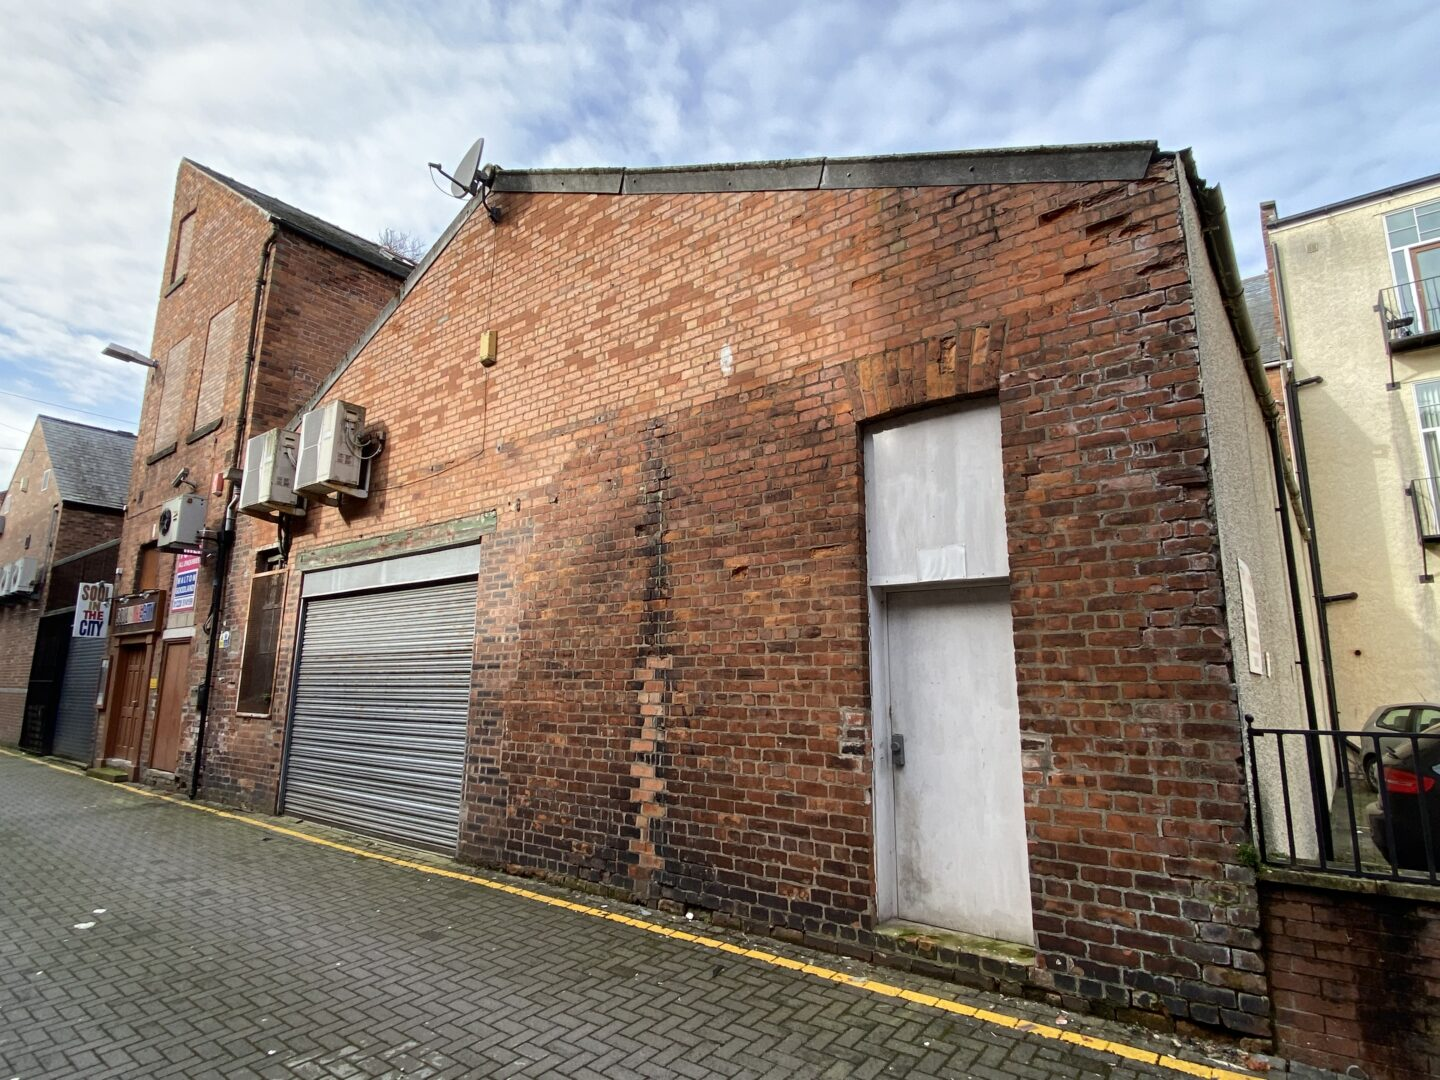 18 – 24 Lonsdale Street, Carlisle, CA1 1DB – SOLD (SUBJECT TO CONTRACT)